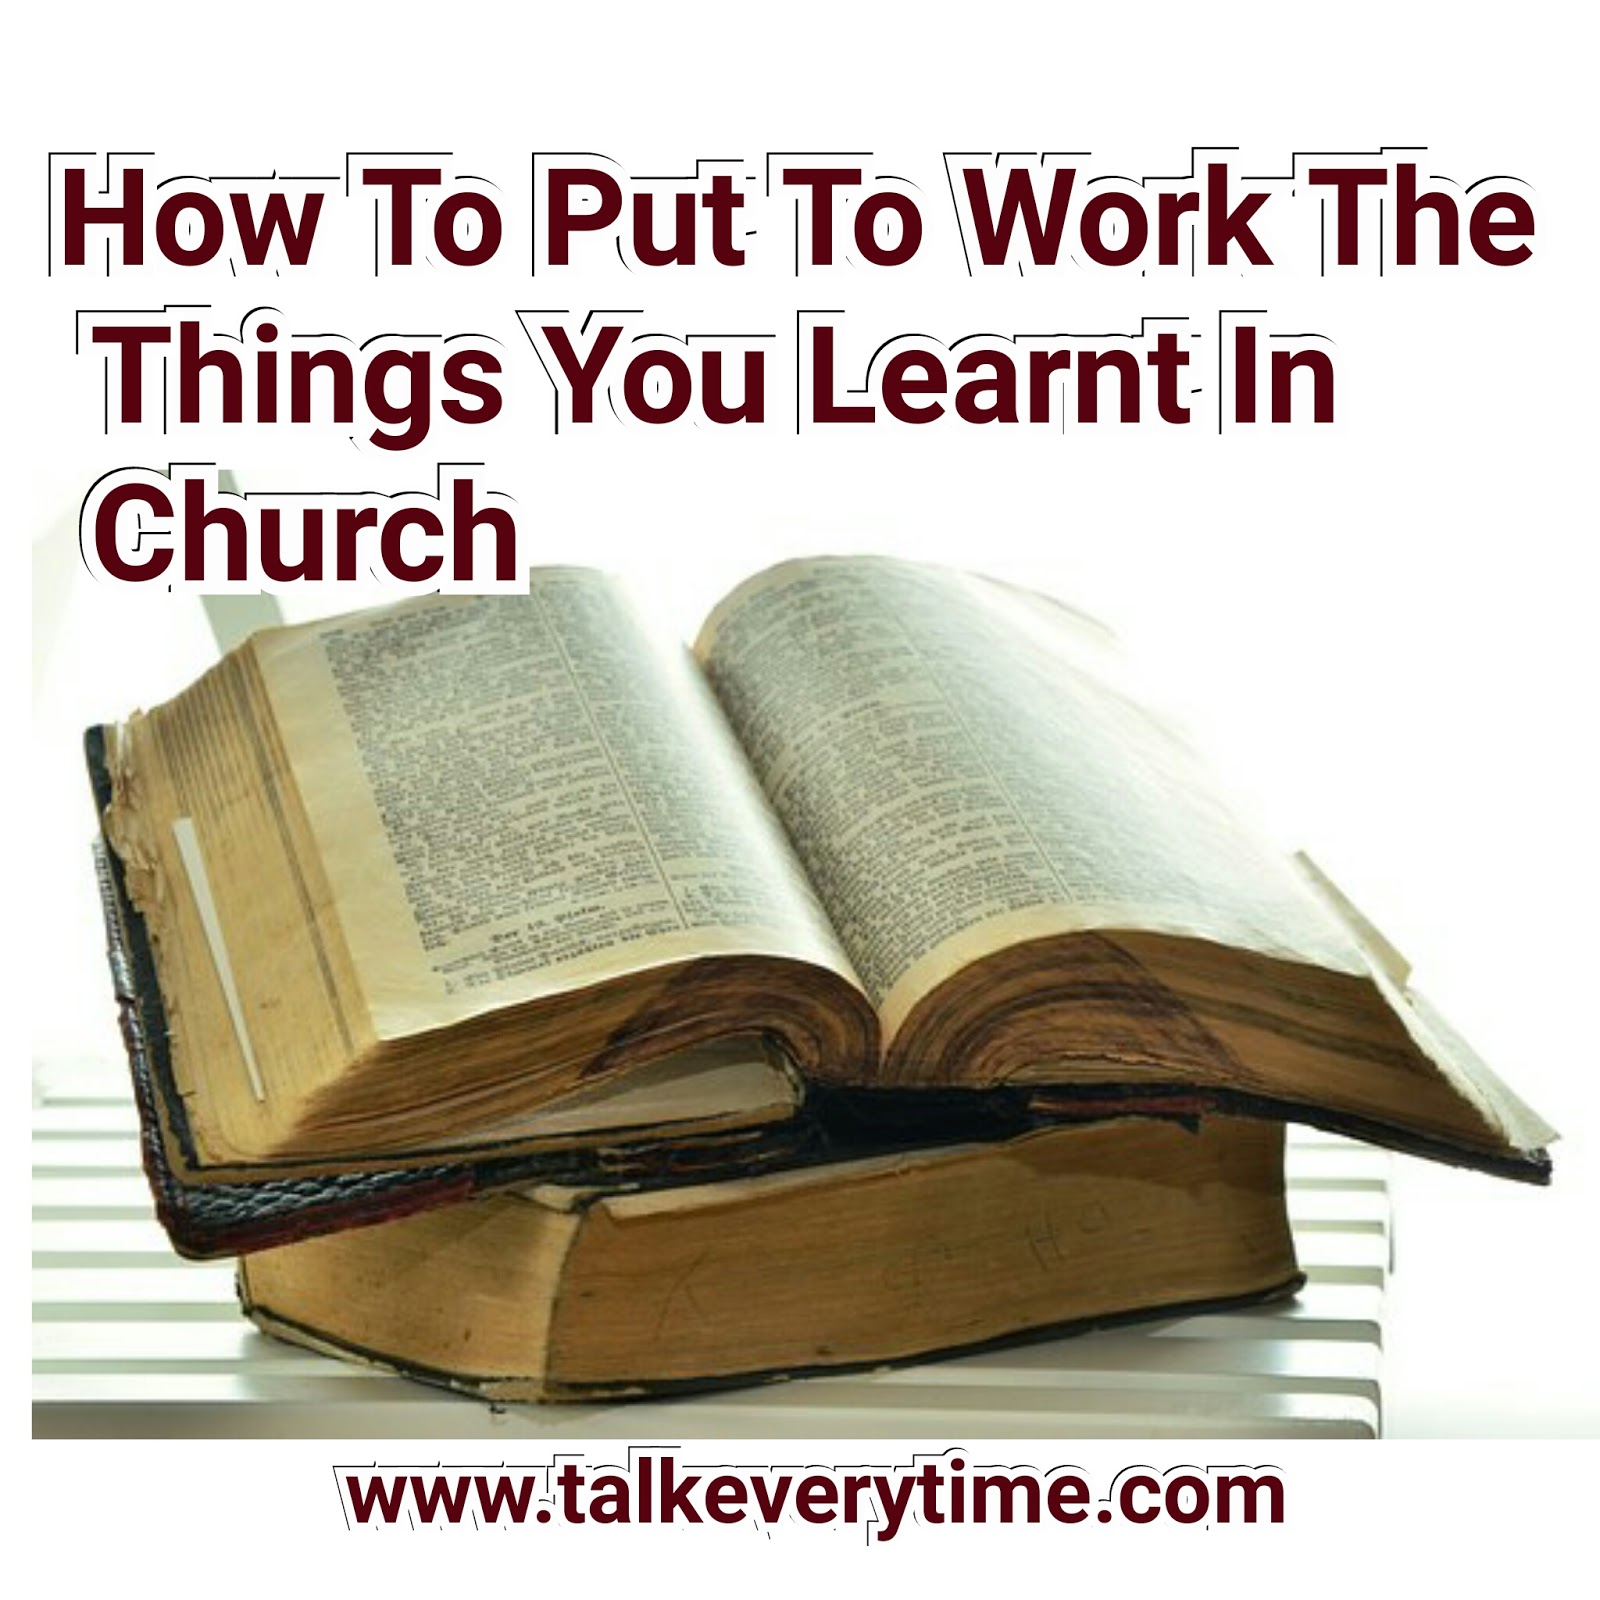 How To Put To Work The Things You Learn In Church